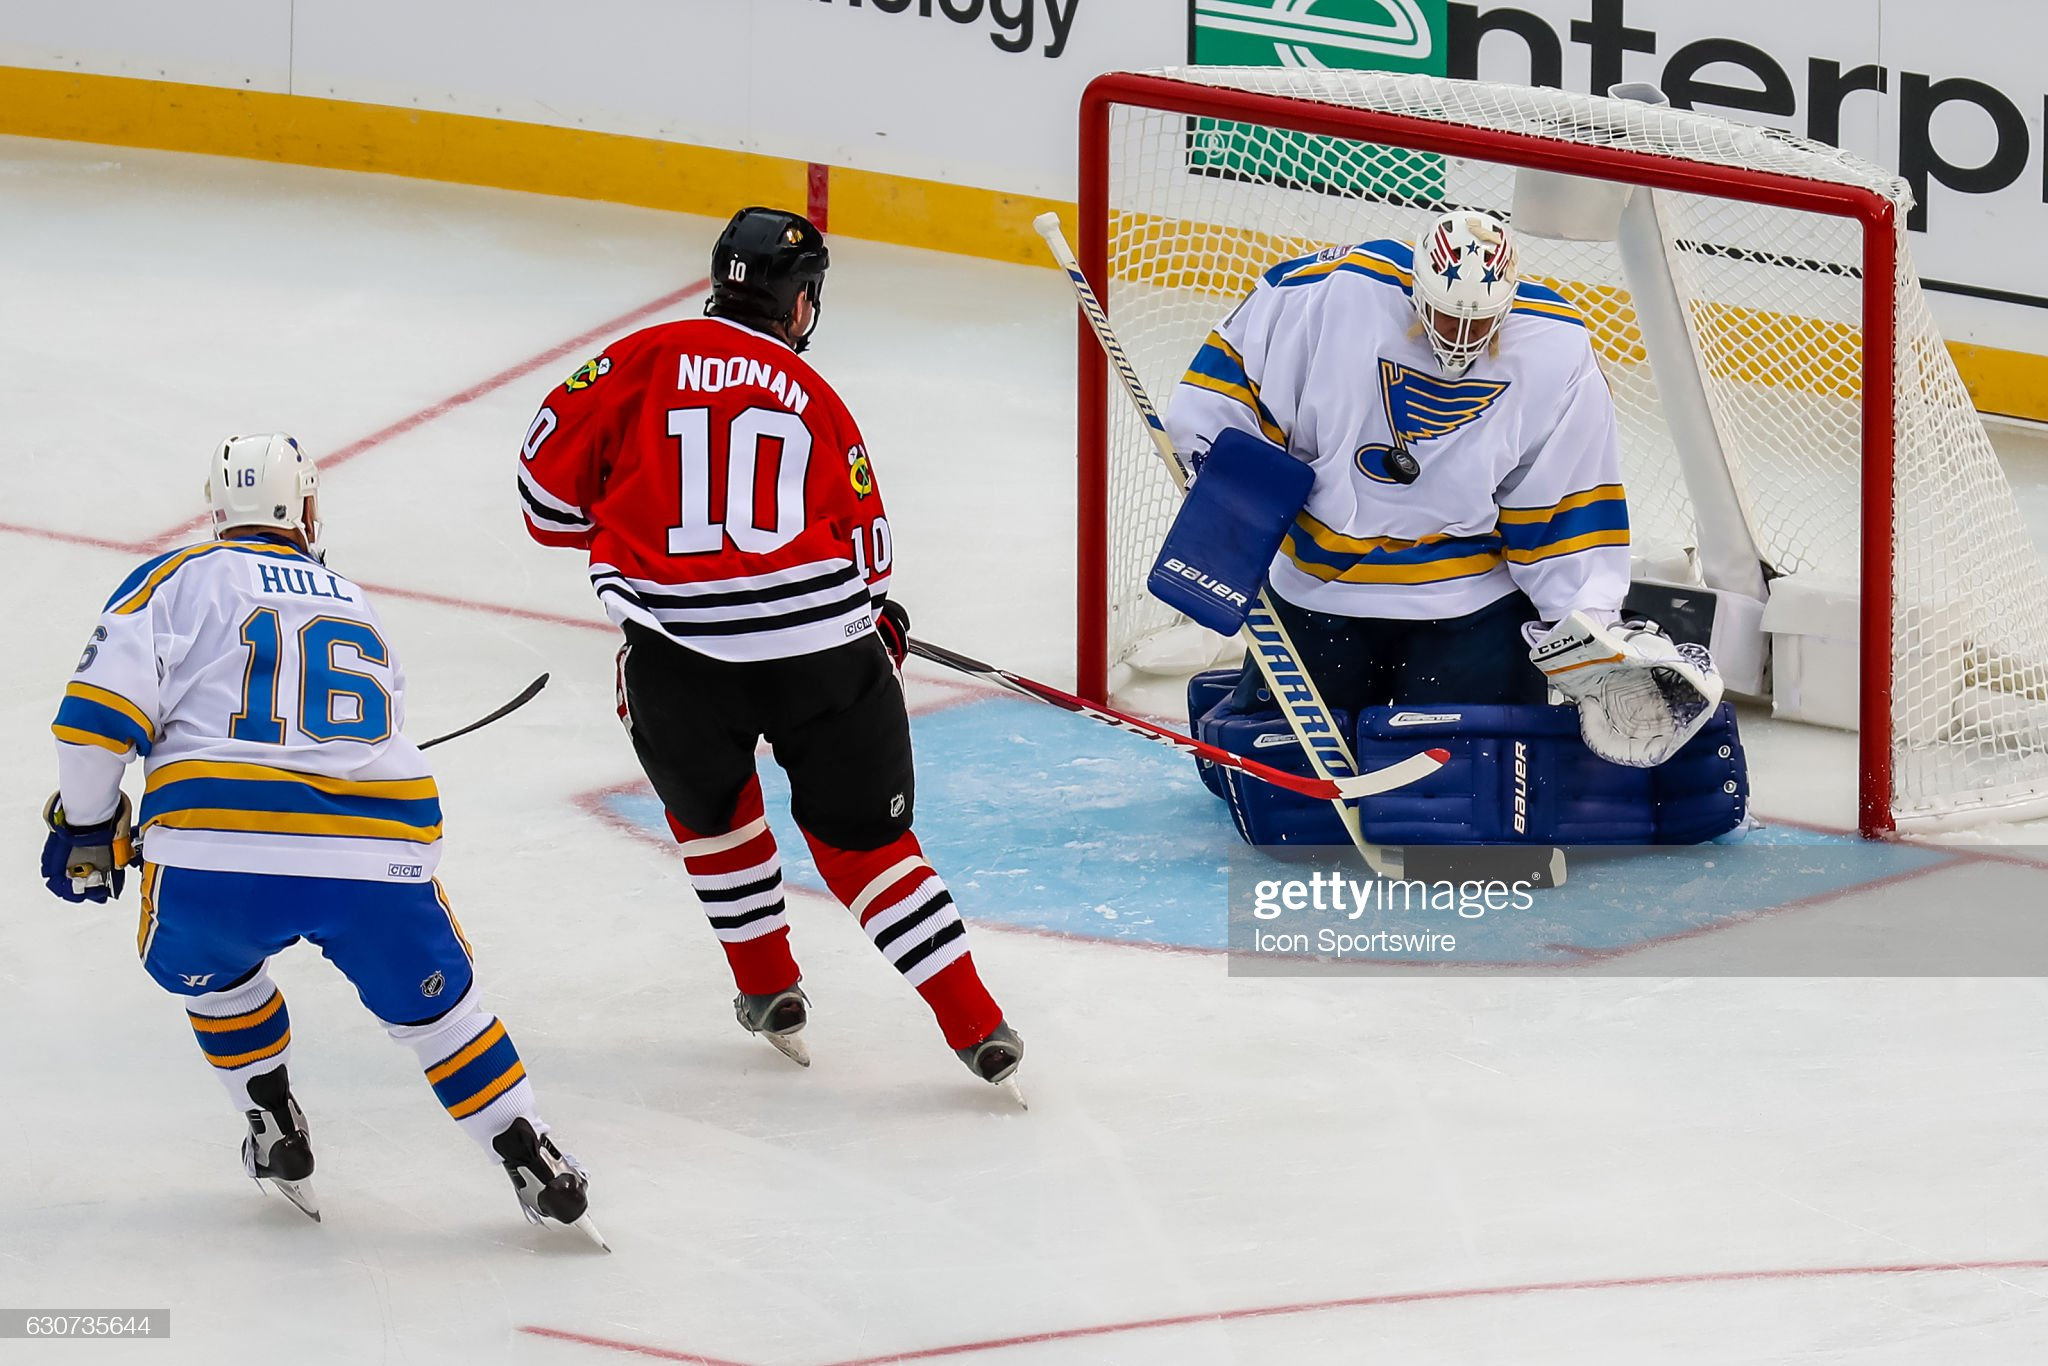 st-louis-blues-goalie-mike-liut-makes-a-